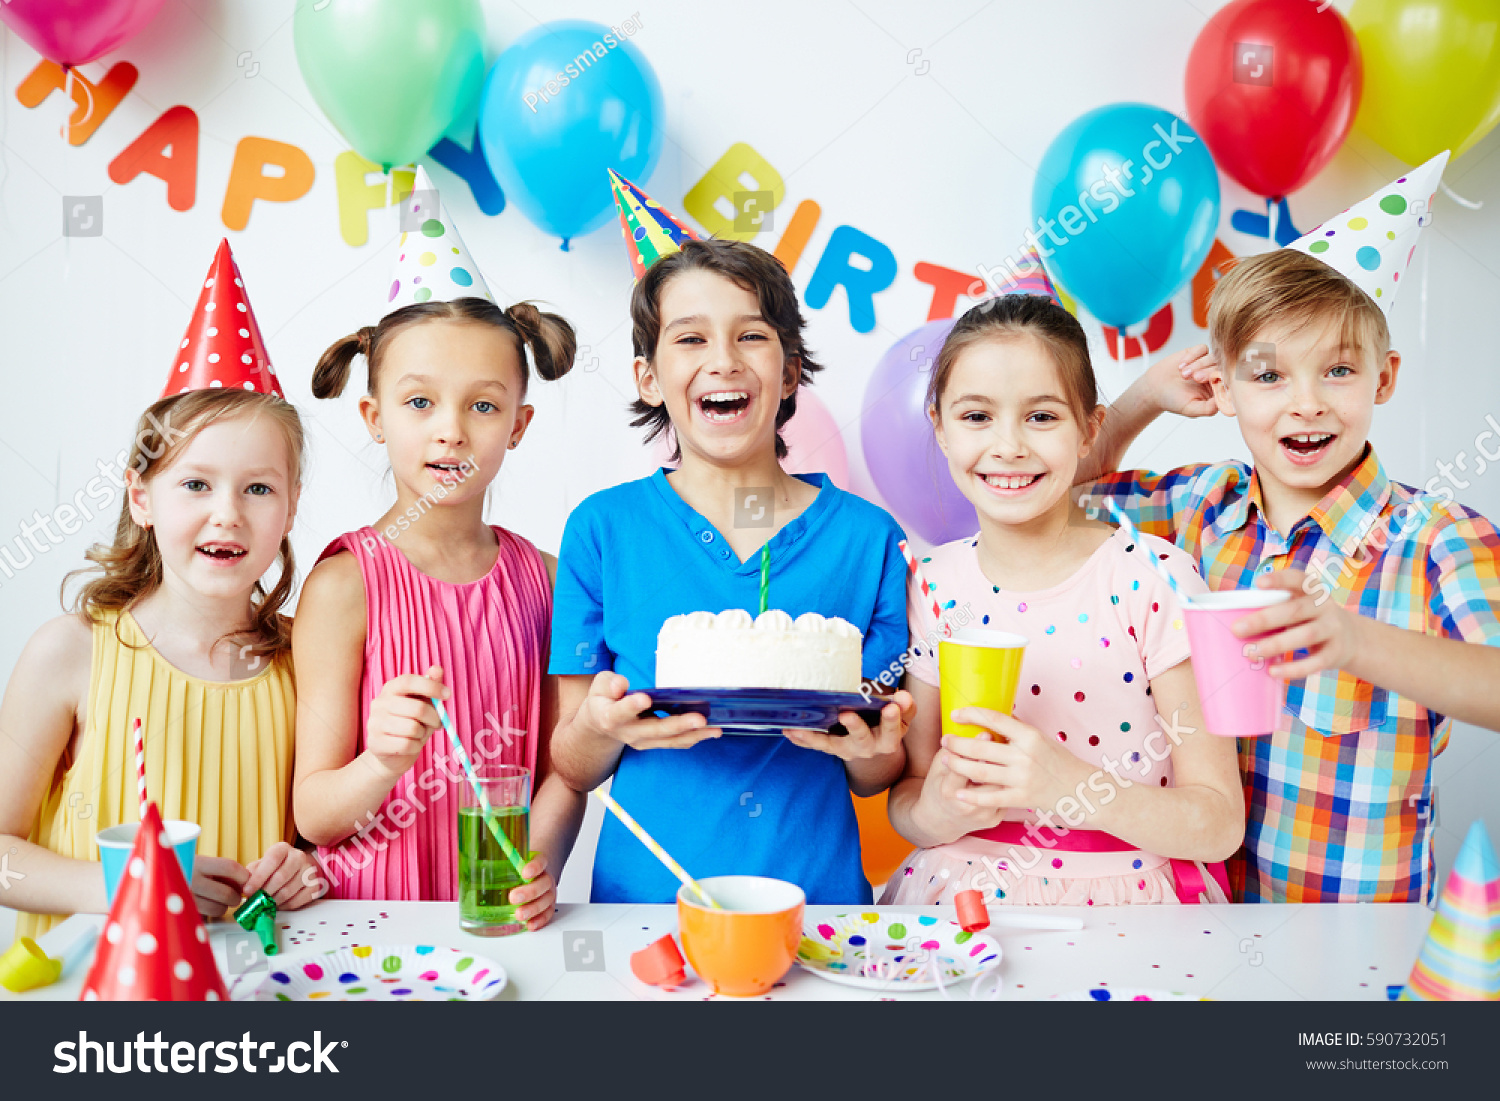 Group Agitated Children Together Posing Birthday Stock